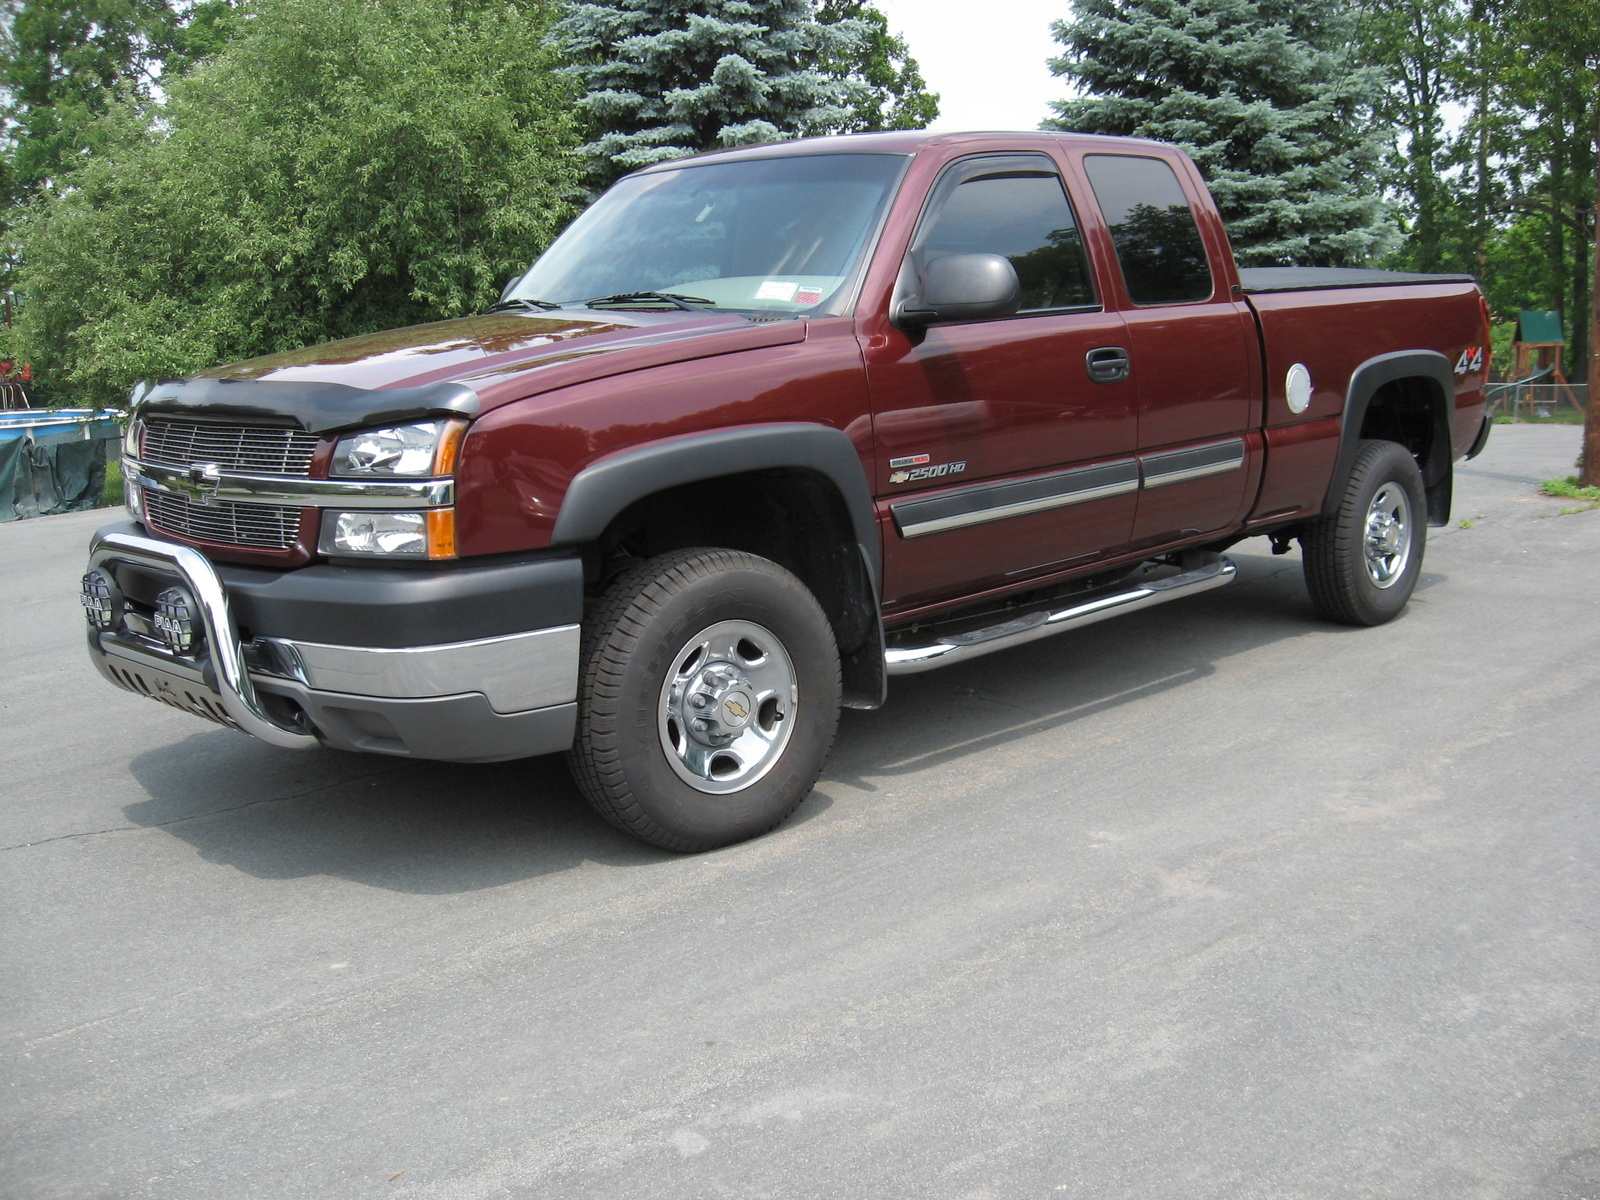 2003 chevrolet silverado 2500hd overview cargurus. Black Bedroom Furniture Sets. Home Design Ideas